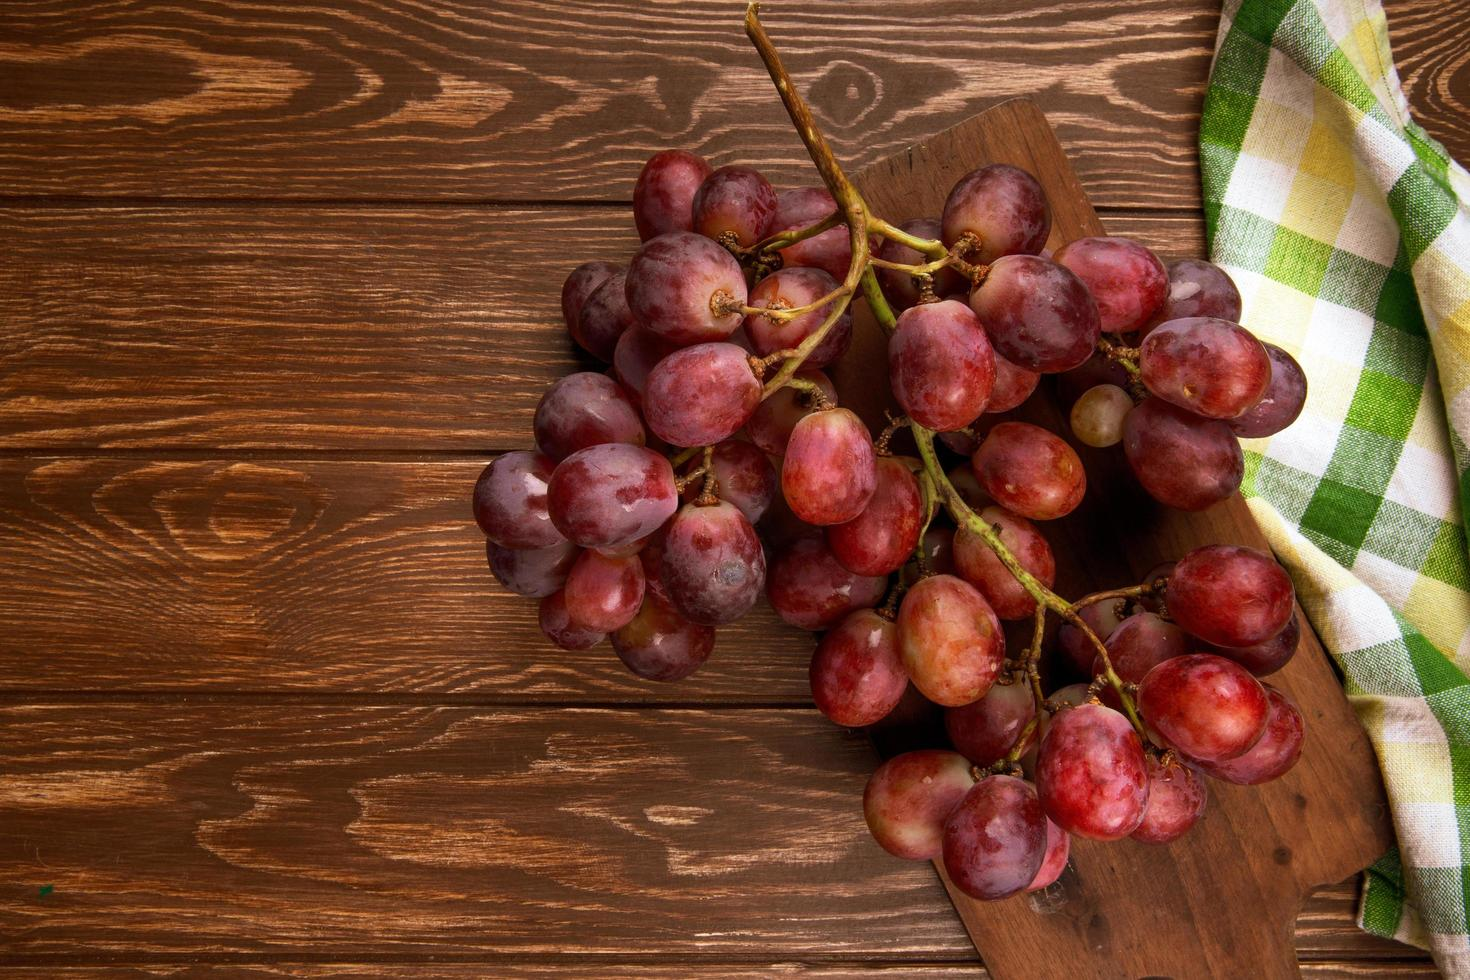 Bunch of fresh grapes on wooden rustic background photo